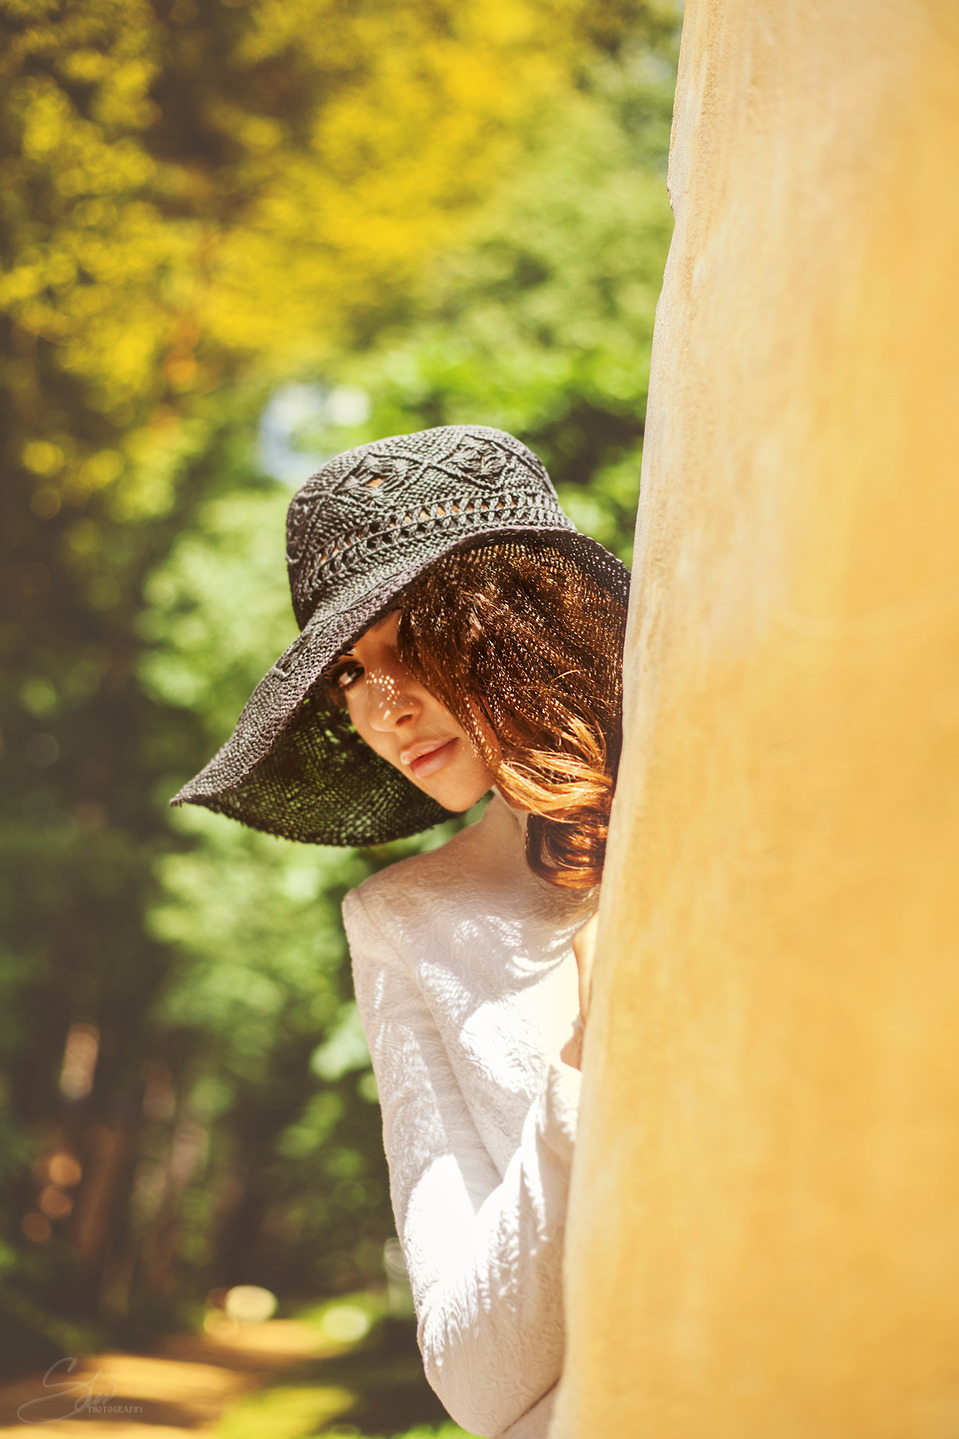 Hide-and-seek in the forest | girl, hide-and-seek, hat, tree